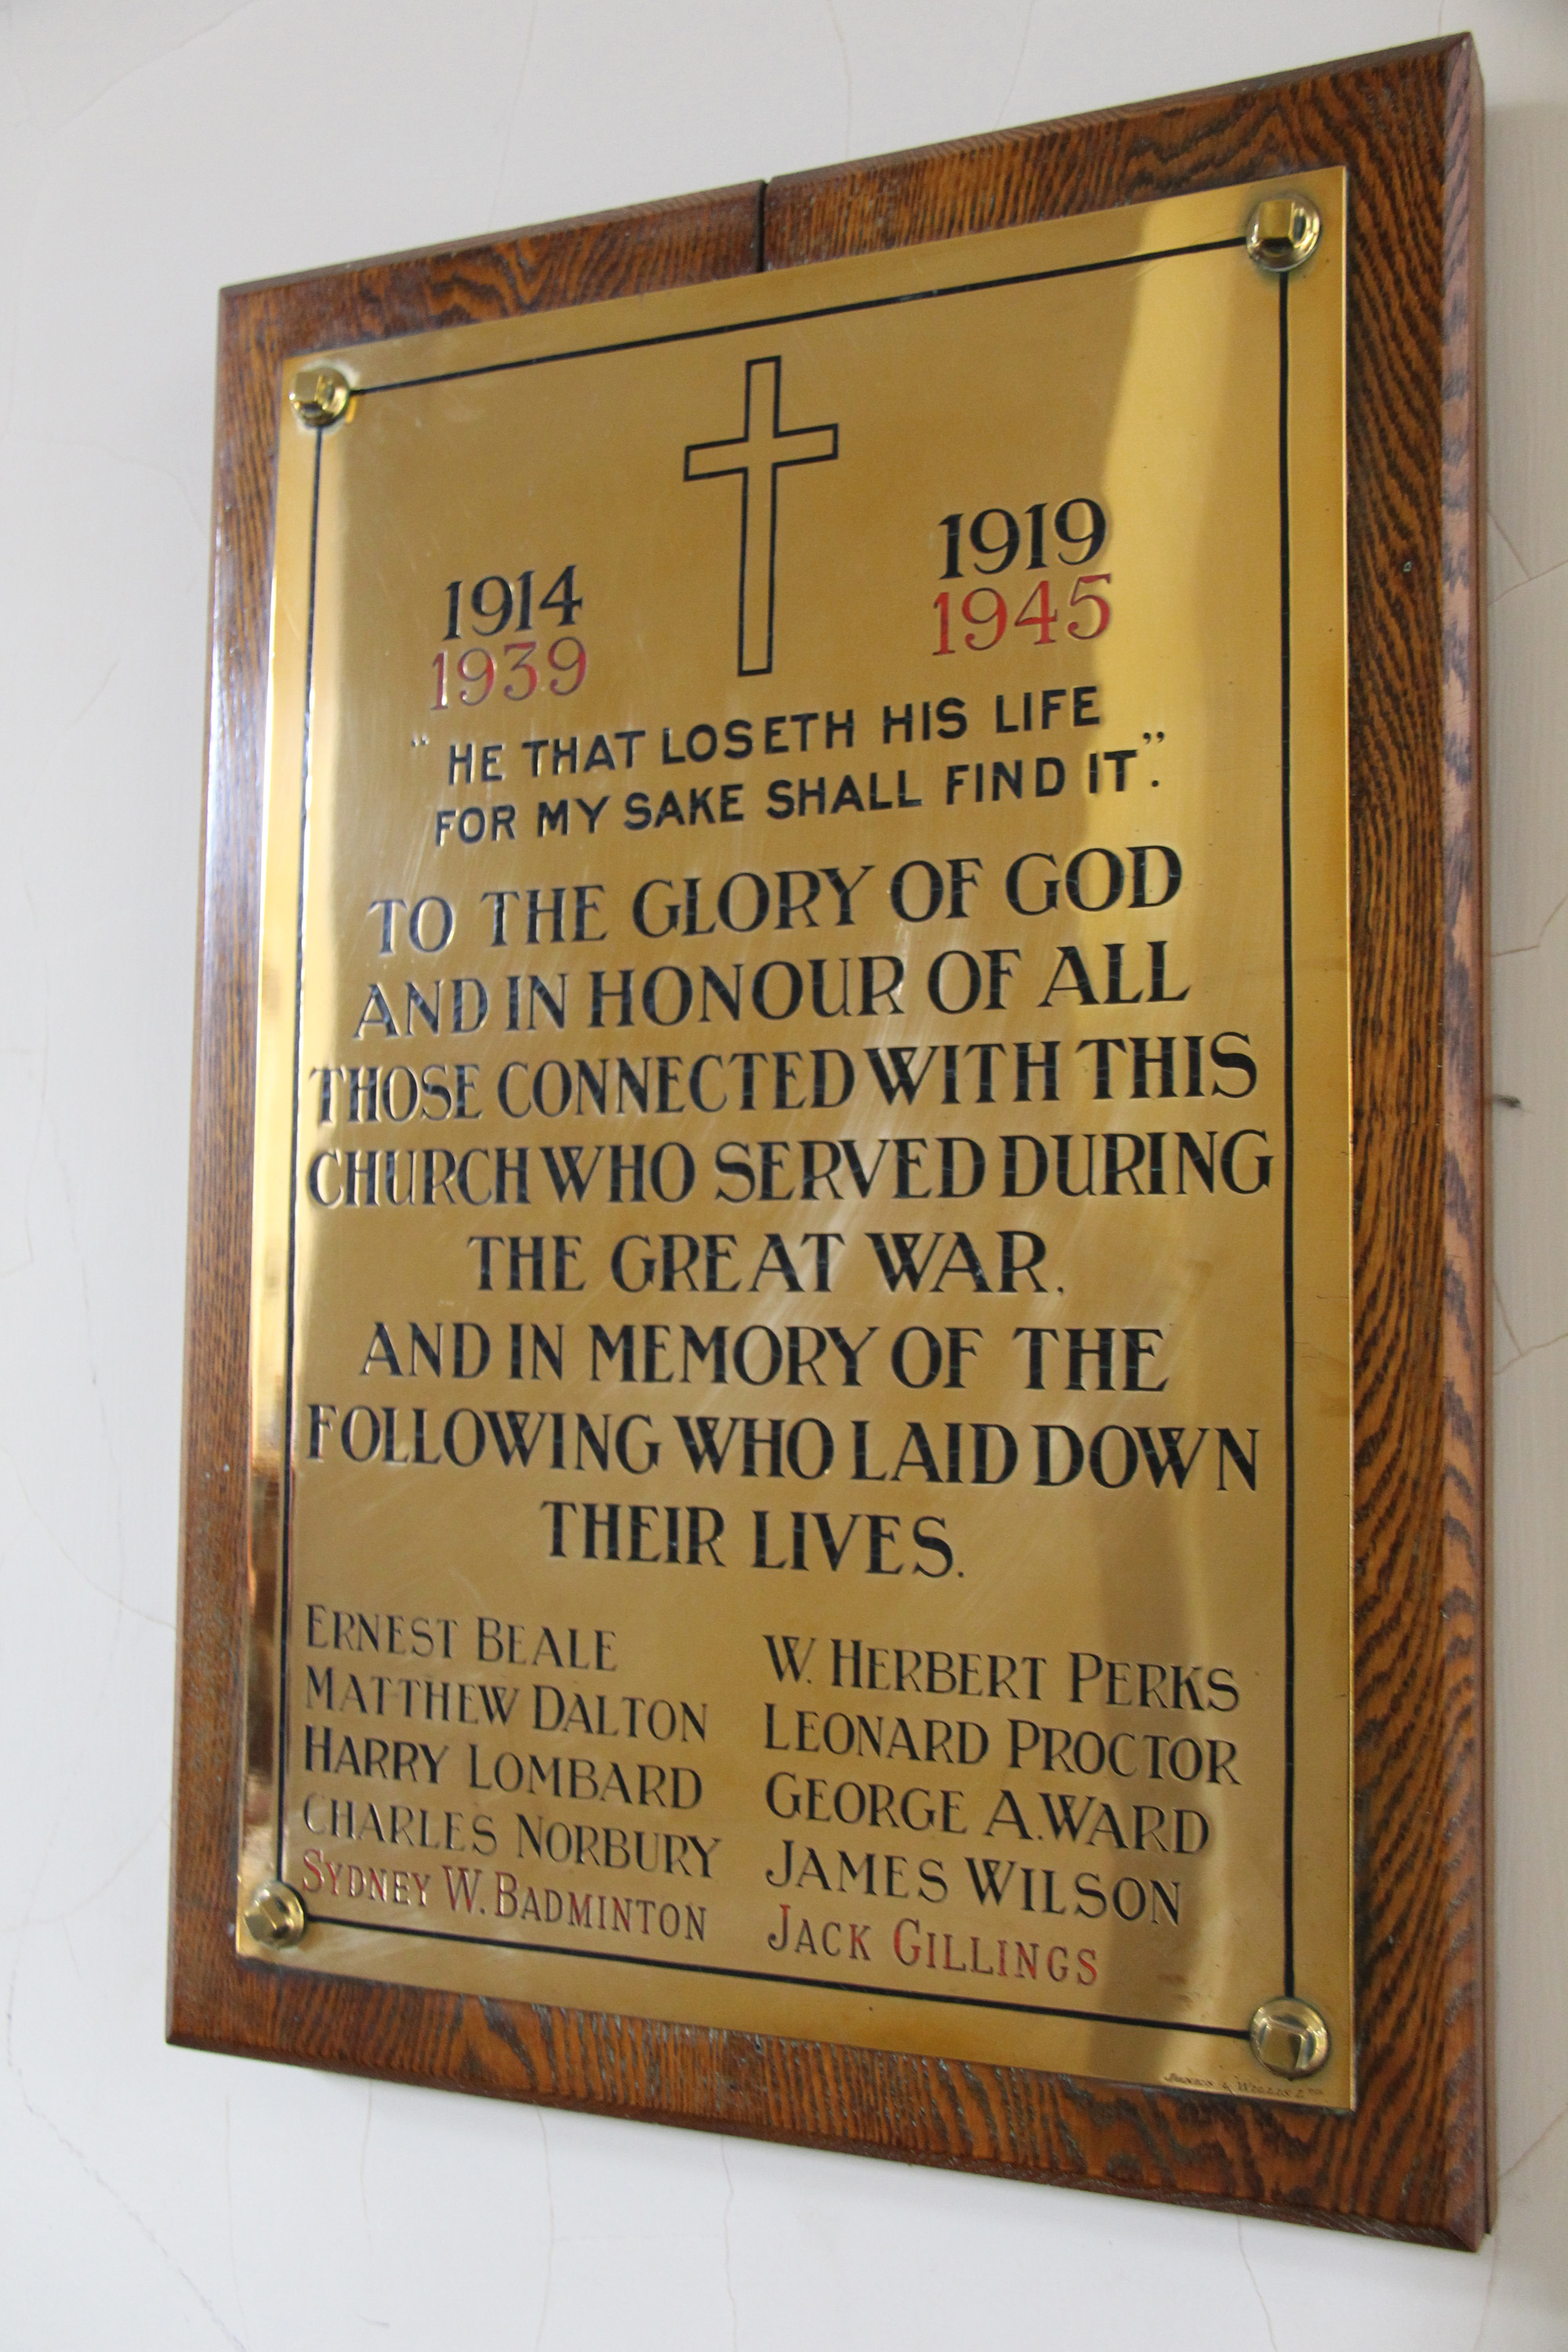 St Pauls Foleshill - memorial plaque